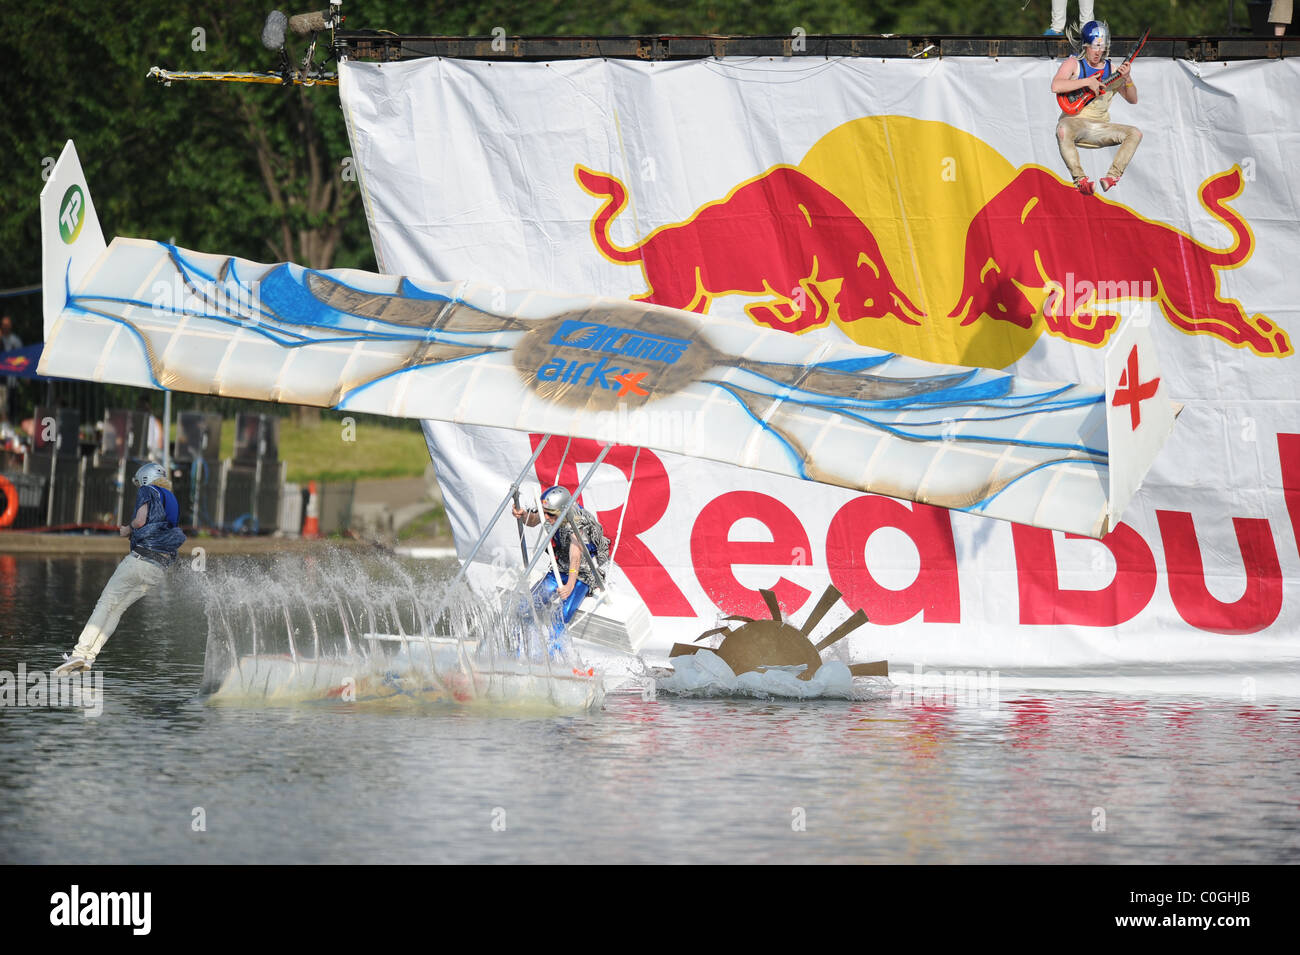 Icarus Airkix 2008 Red Bull Flugtag in Hyde Park London, England - 07.06.08 Alex Broadway/ - Stock Image